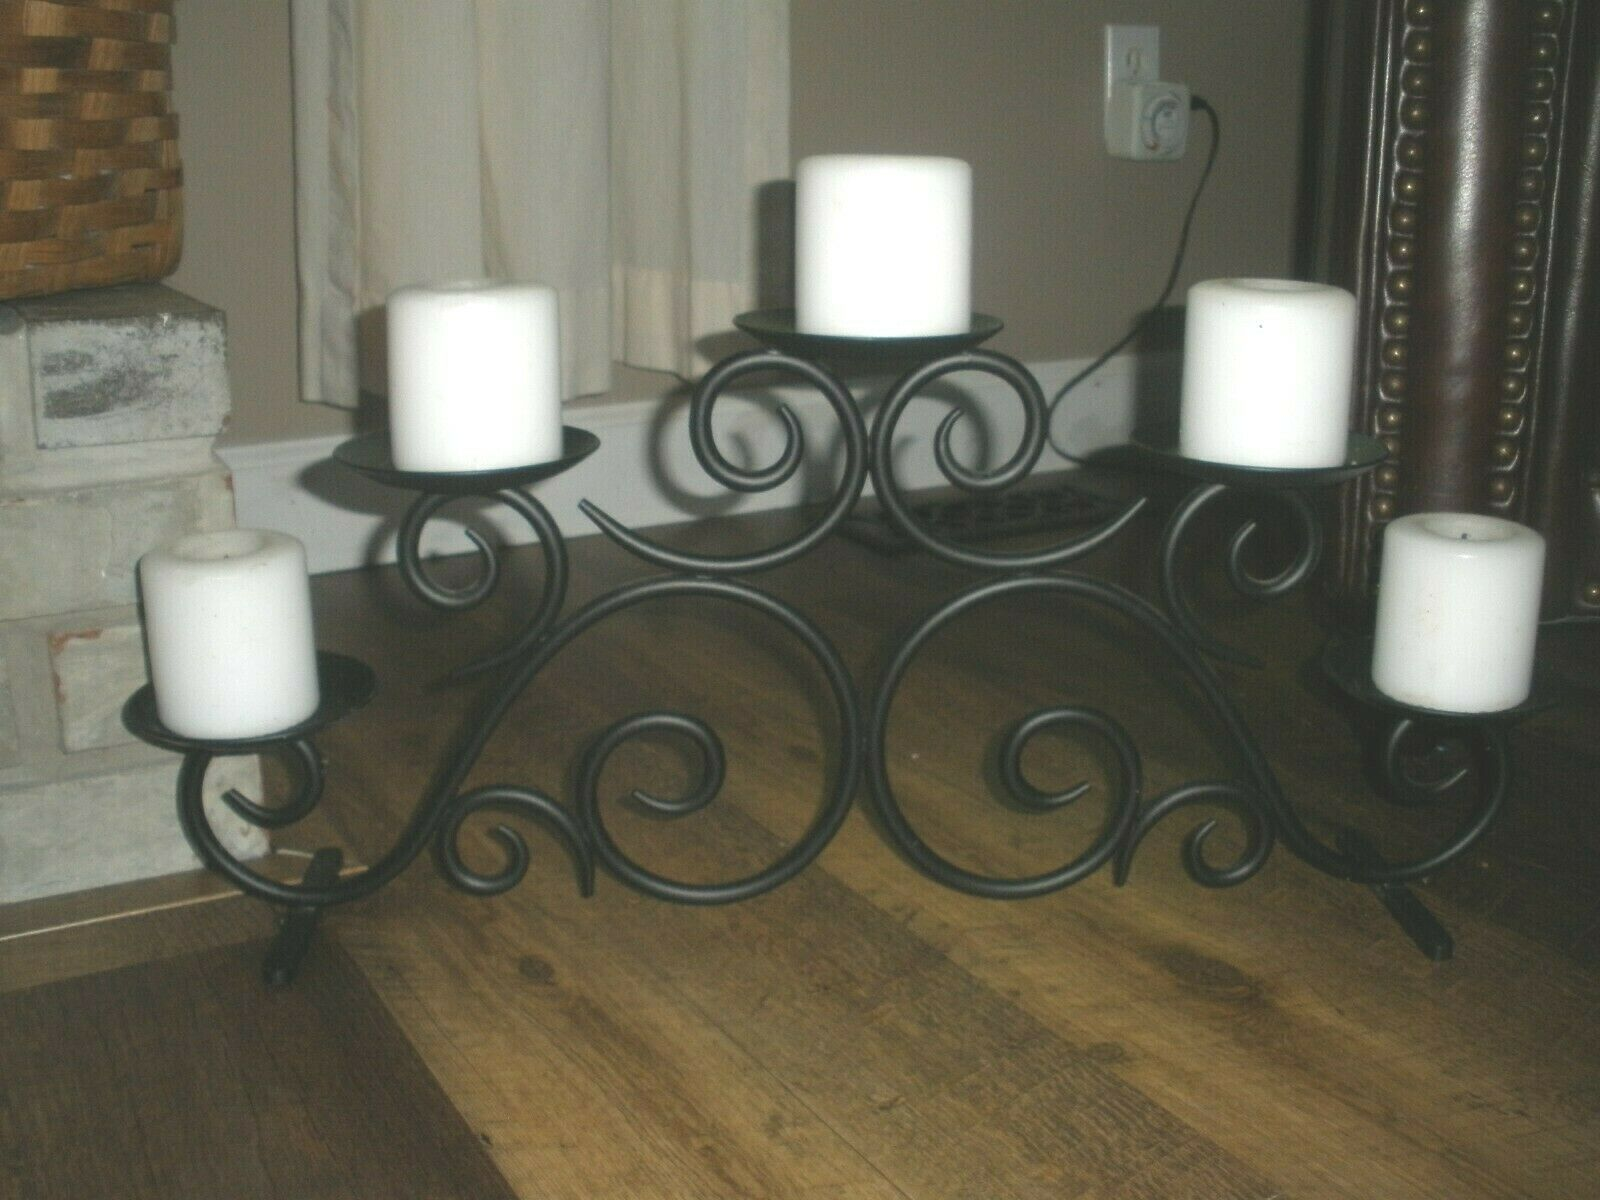 Target Home Amber Bumpy Glass Wrought Iron Leaf Hurricane Pillar Candle Holder For Sale Online Ebay